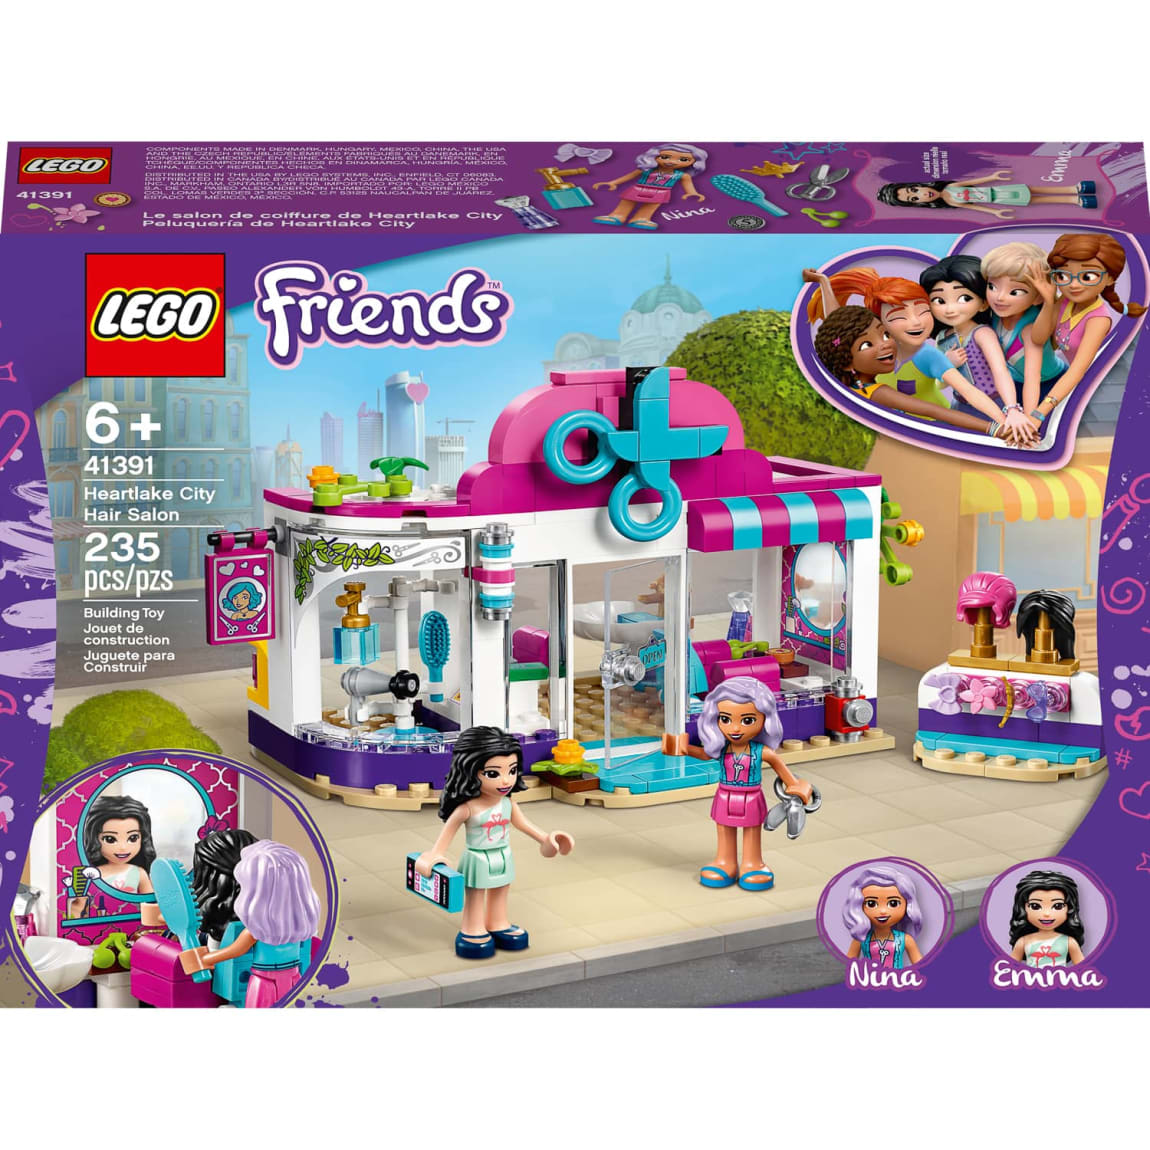 LEGO Friends Heartlake City Hair Salon